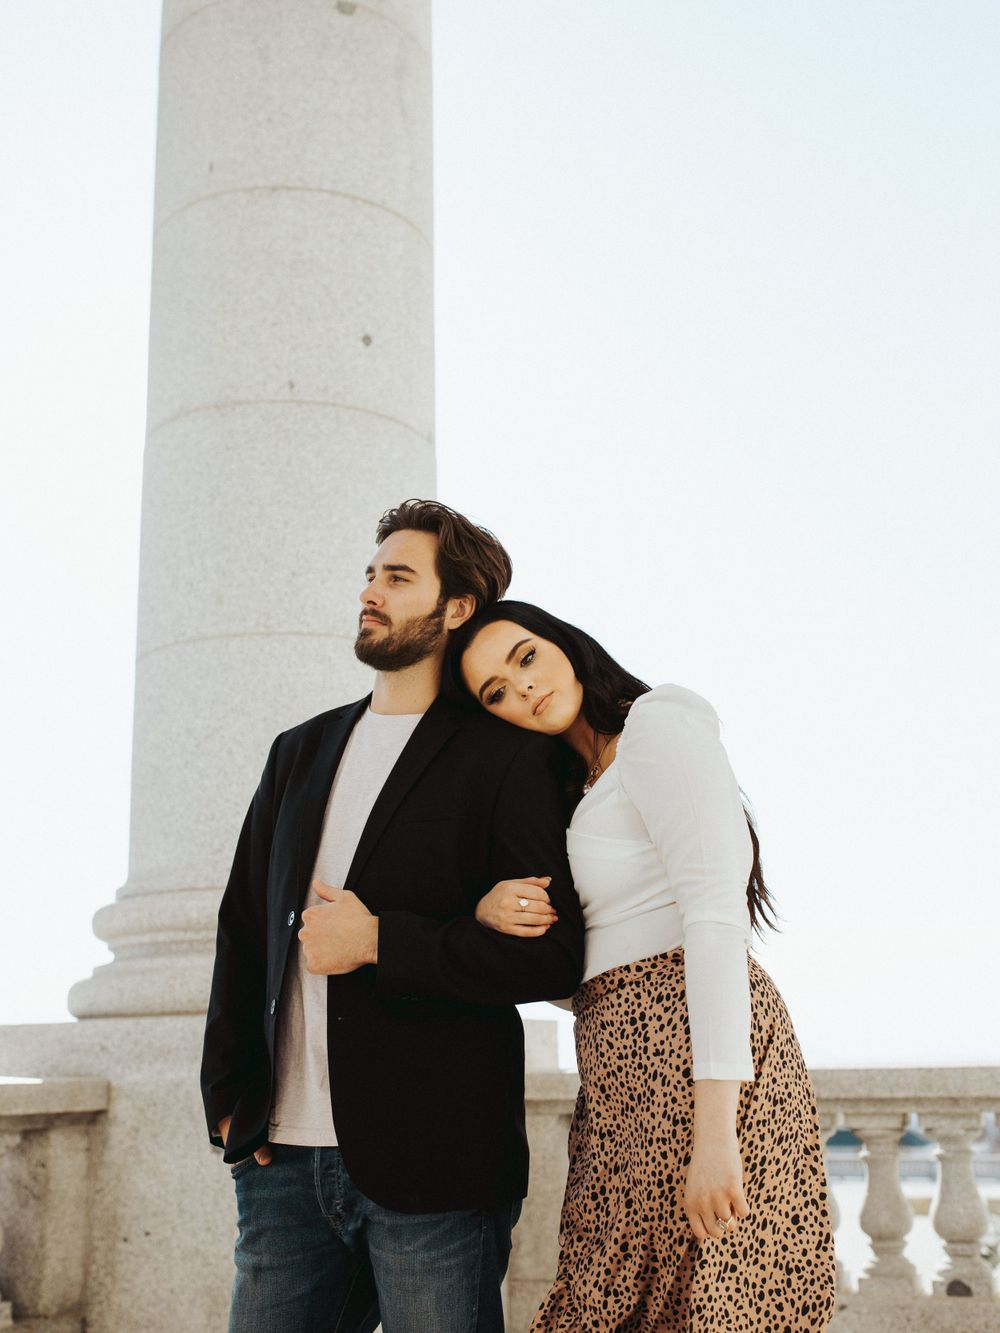 utah couple session posing inspiration outfit inspiration engagement winter city photoshoot utah wedding photographer